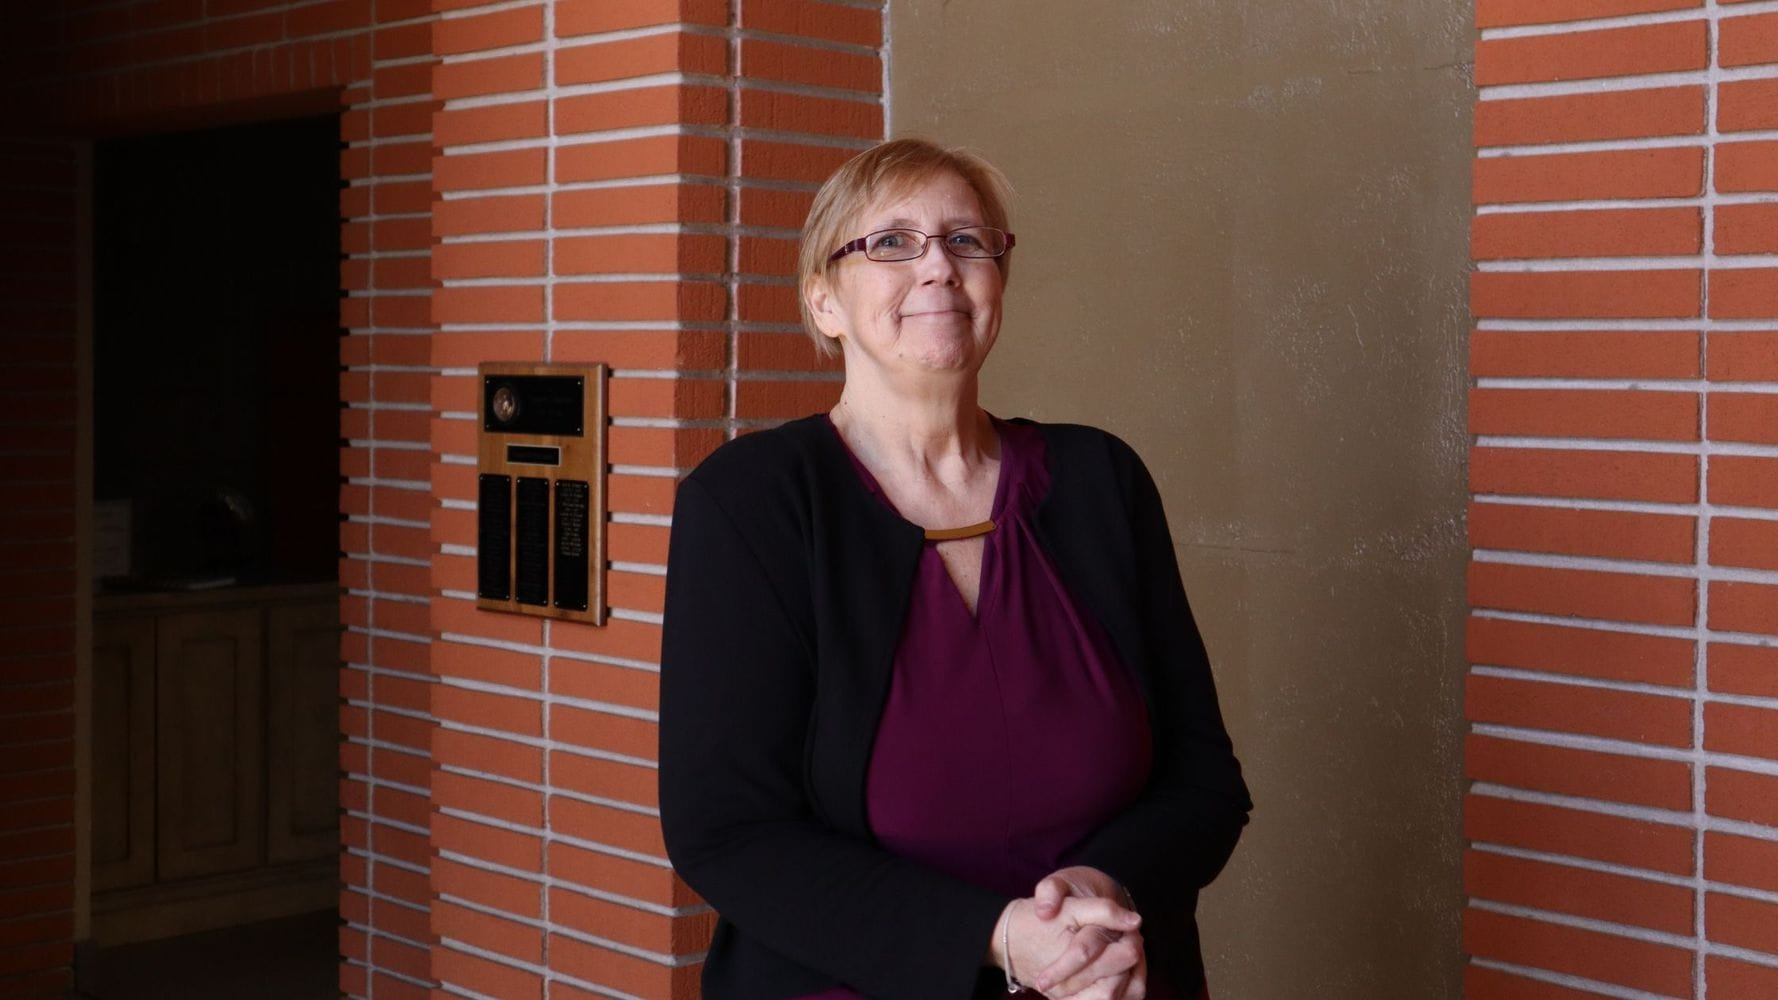 Pastor Becky MacLearn